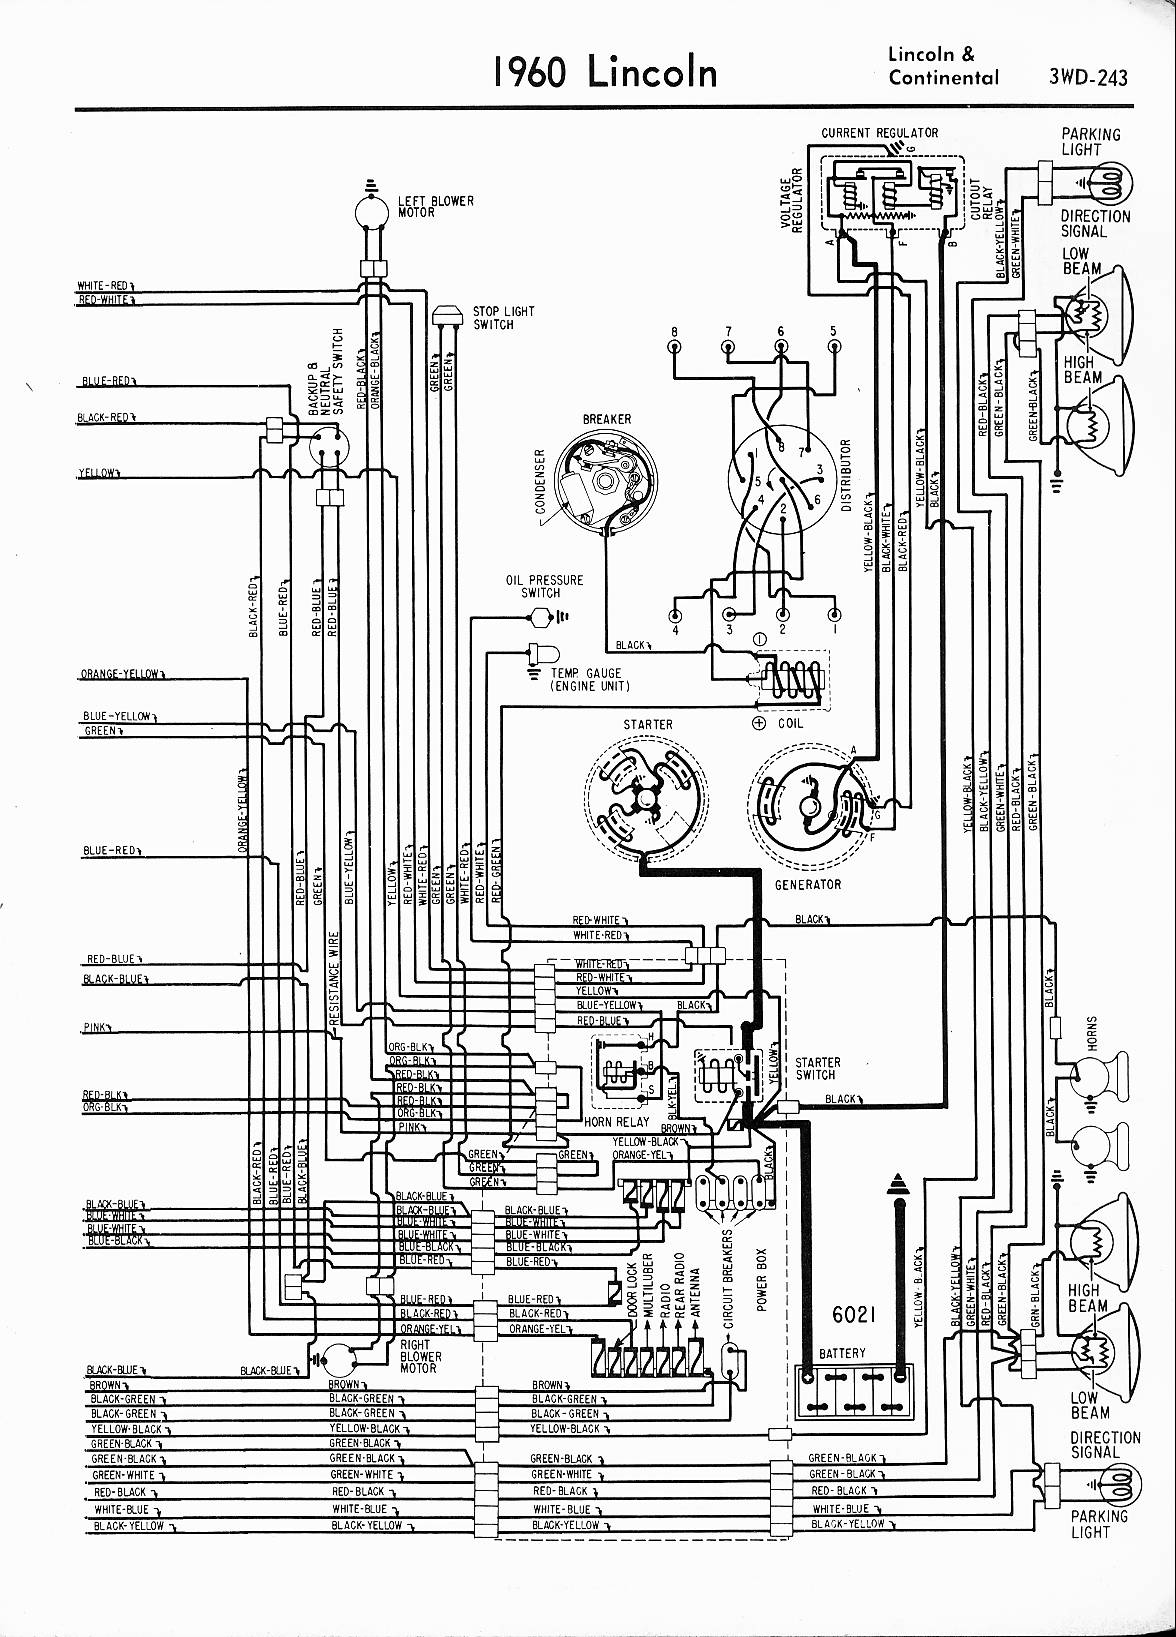 2008 Lincoln Navigator Fuse Panel Diagram Wiring Library 2006 1960 Schematics Diagrams U2022 Rh Schoosretailstores Com 2001 Engine